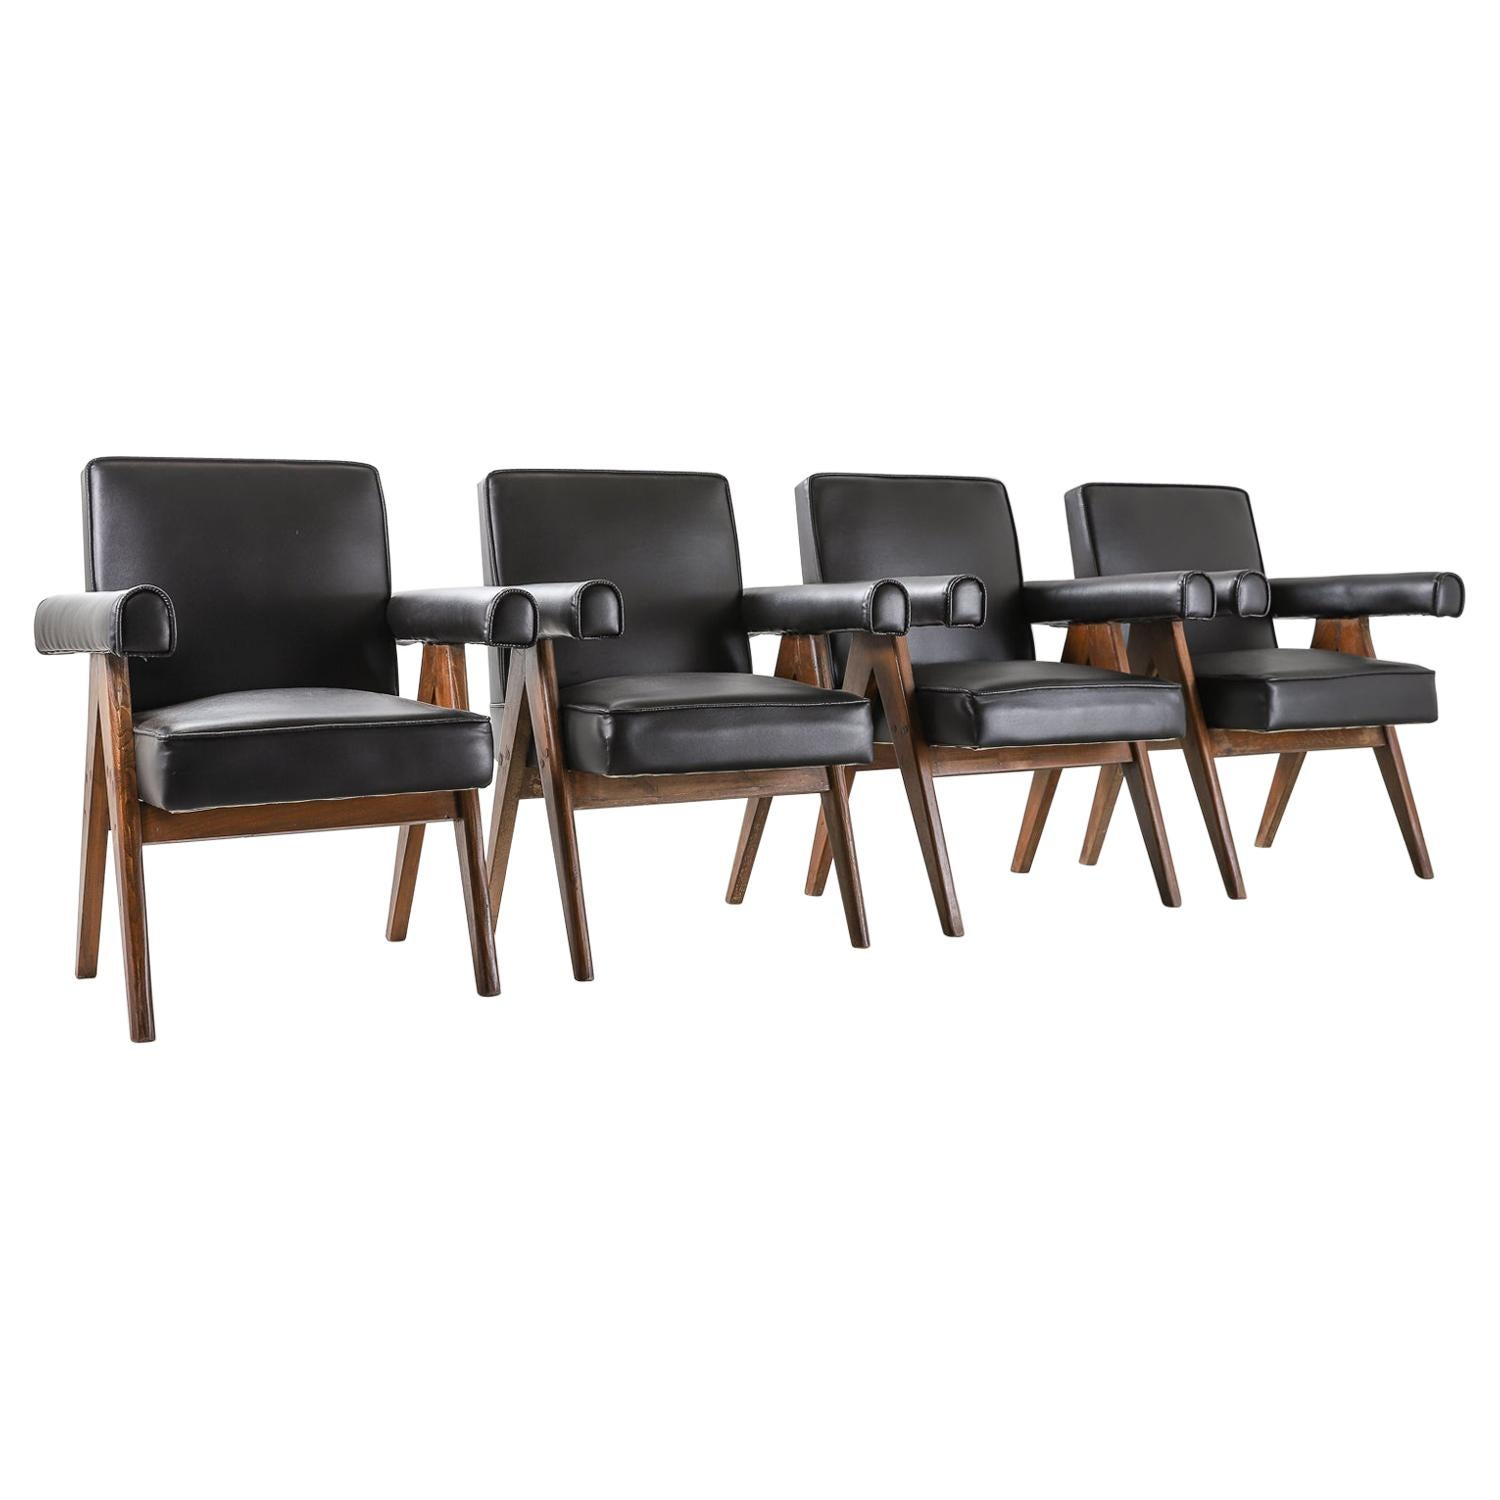 """Set of 4 Pierre Jeanneret """"Office Chair"""", circa 1959-1960"""